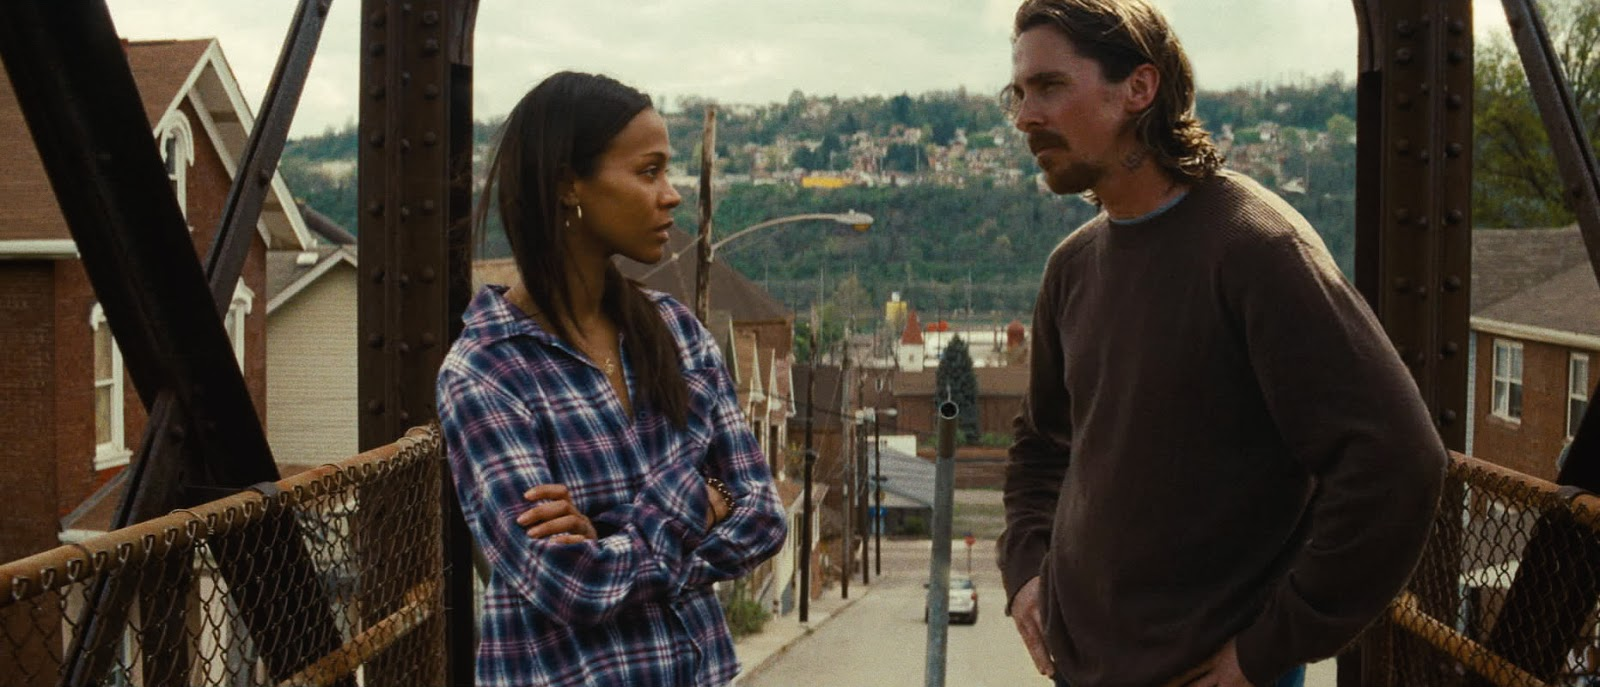 Reel Talk Online: Review: 'OUT OF THE FURNACE', Despite